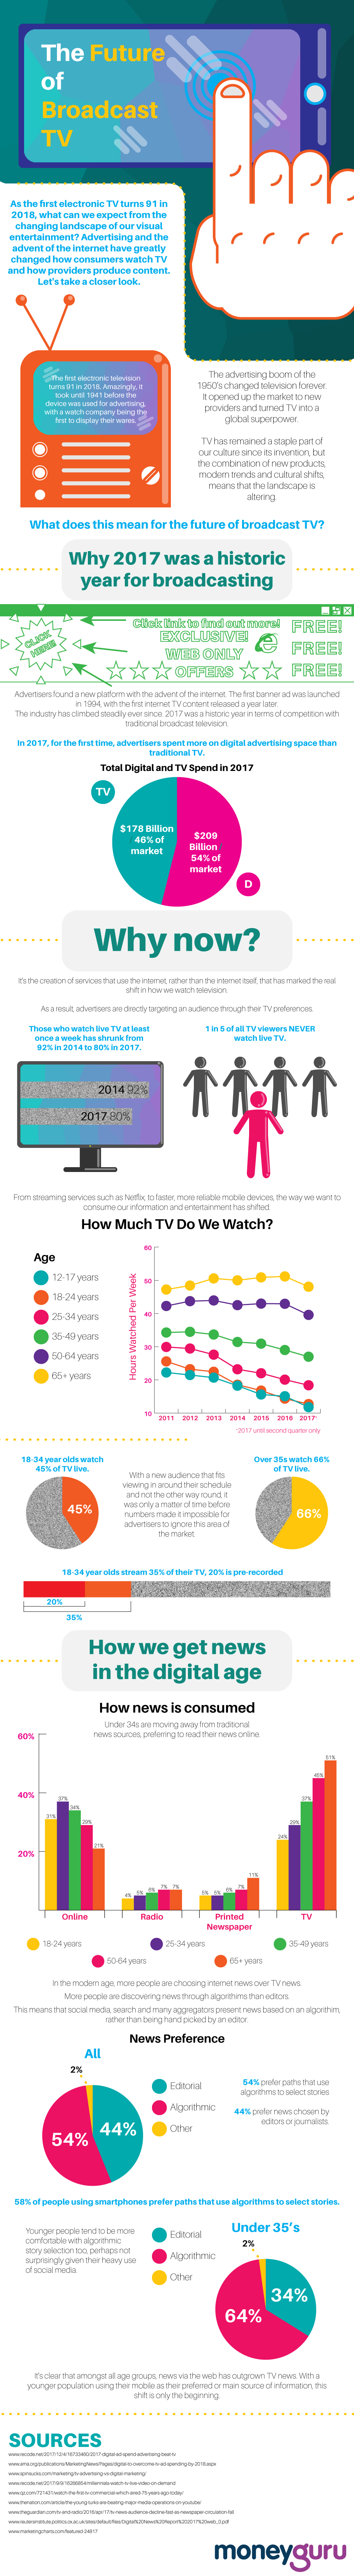 From Live to Digital: How TV Consumption is Changing - Infographic